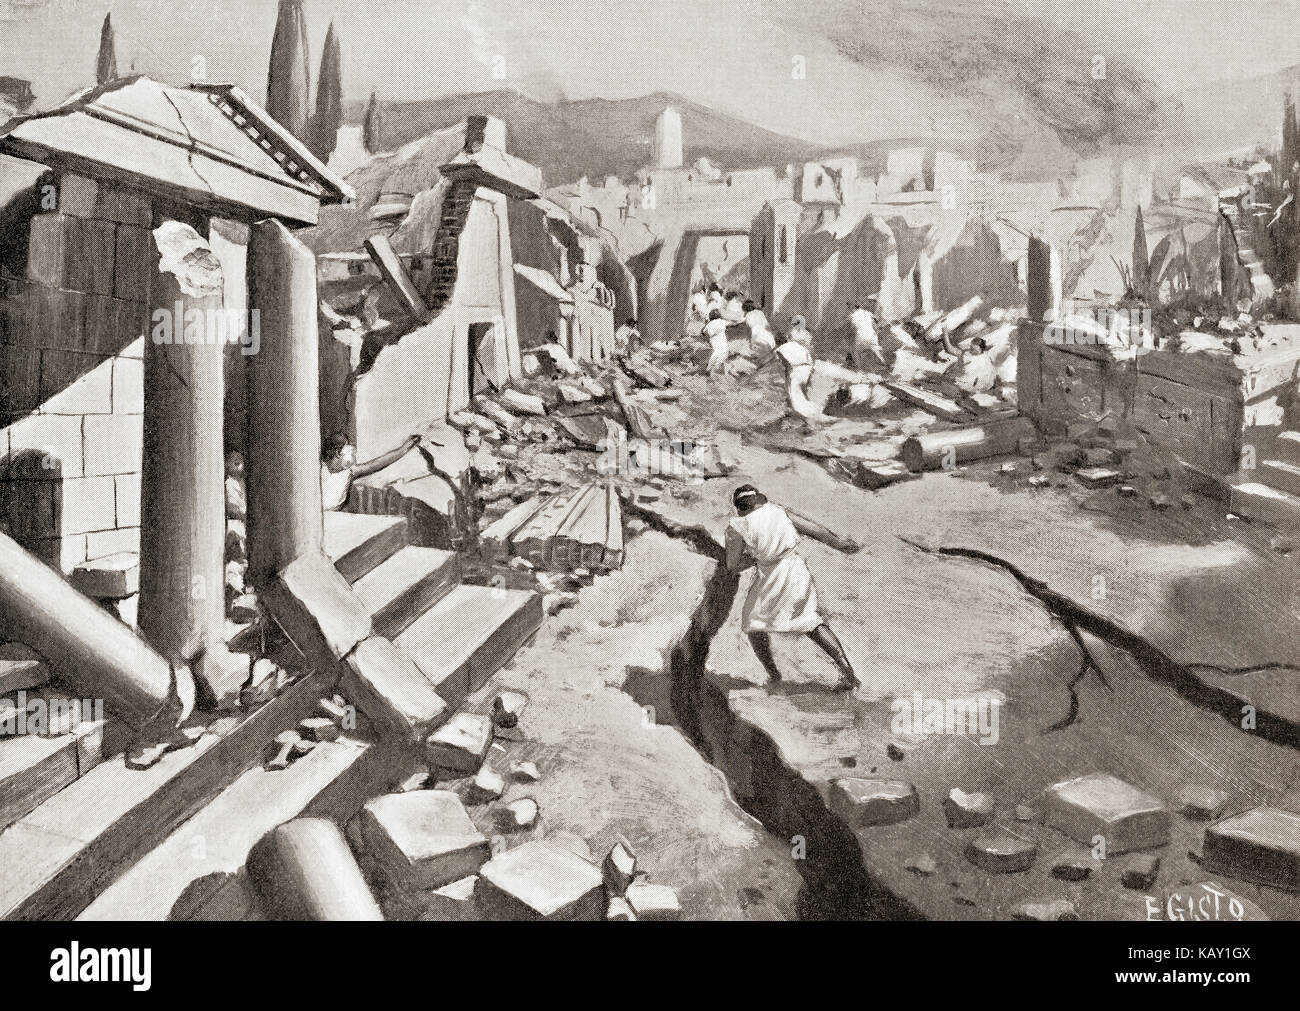 The earthquake at Sparta, ancient Greece, 464 BC.  From Hutchinson's History of the Nations, published 1915. - Stock Image